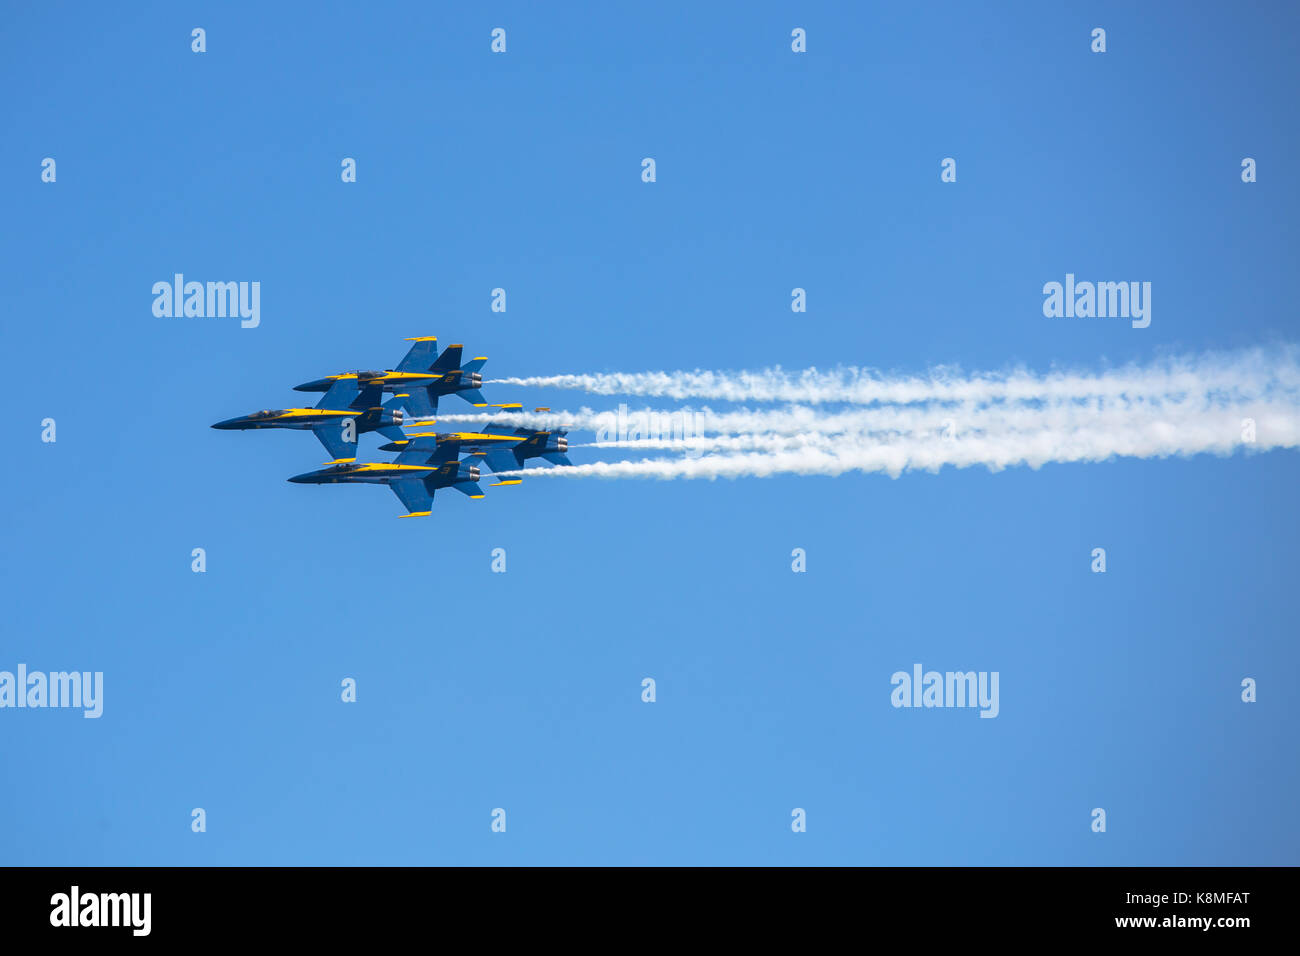 US Navy Blue Angels F/A-18 Hornets flying in formation against a blue sky during the 2017 Chicago Air and Water - Stock Image